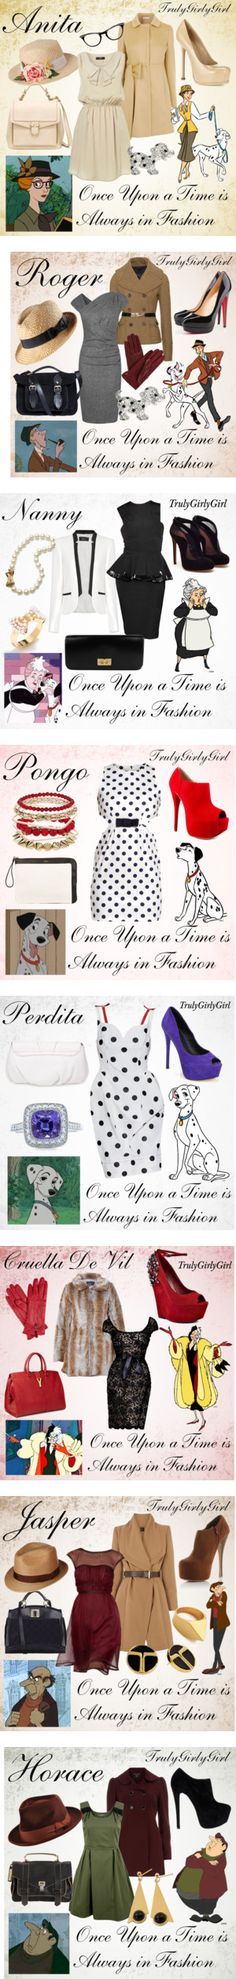 """Disney Style: 101 Dalmations Collection"" by trulygirlygirl - my favorites are Rodger, Jasper, and Horace. Disney Themed Outfits, Disney Bound Outfits, Disney Dresses, Disney Clothes, Adidas Samba, Adidas Superstar, Adidas Sl 72, Disney Inspired Fashion, Disney Fashion"